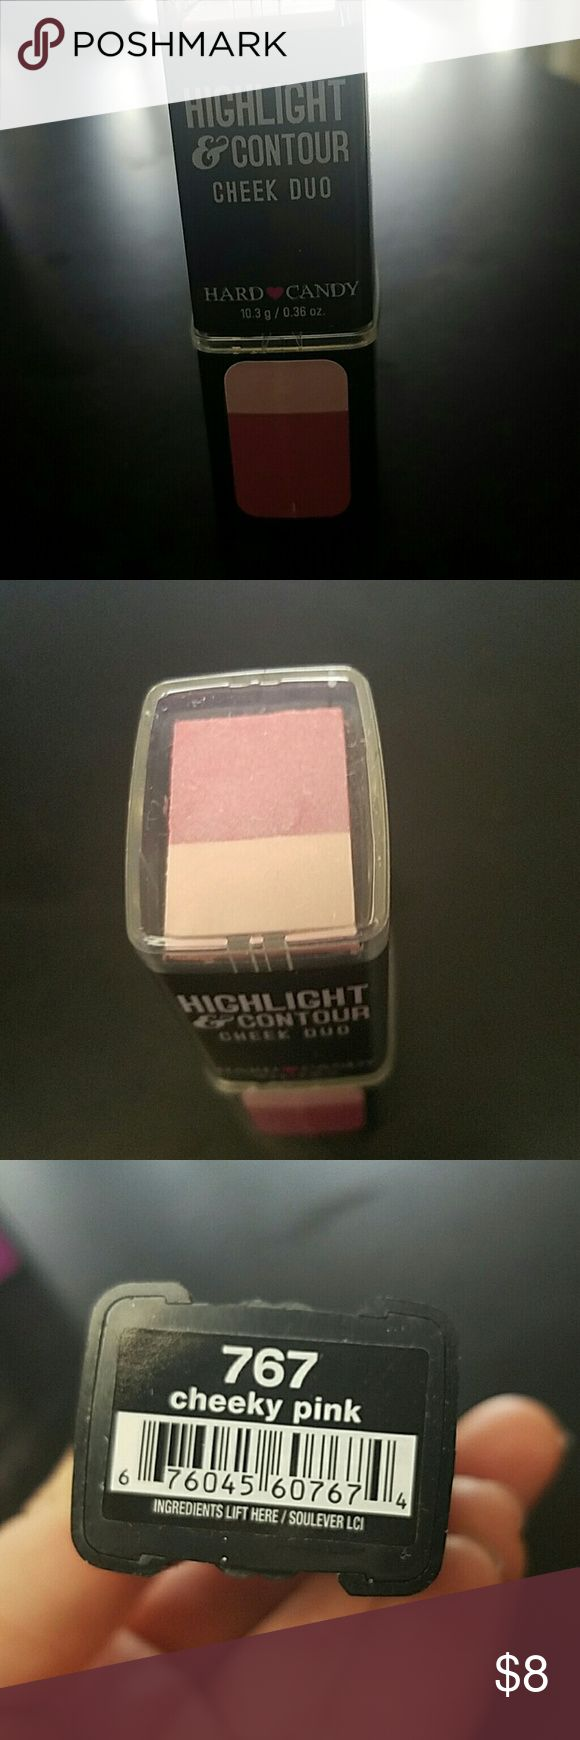 New hard candy highlight & contour cheek duo New hard candy highlight & contour cheek duo in cheeky pink Hard Candy Makeup